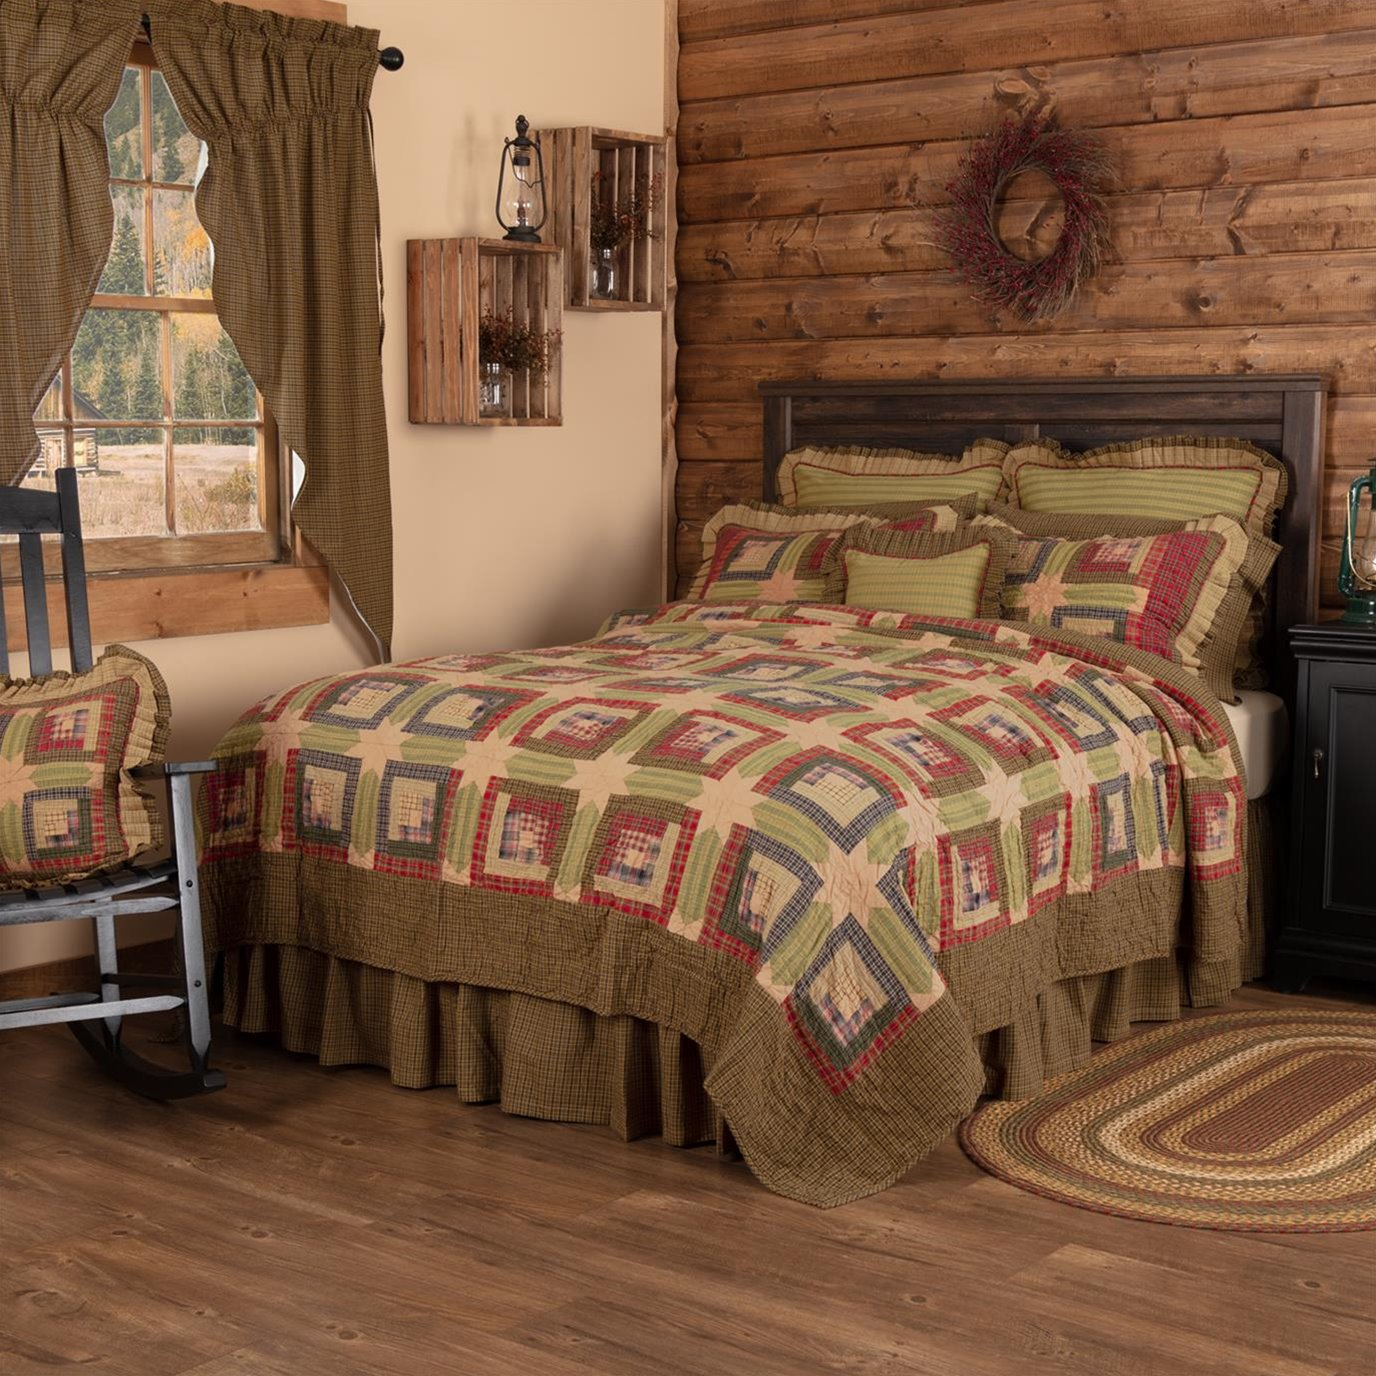 Tea Cabin Twin Quilt 70Wx90L